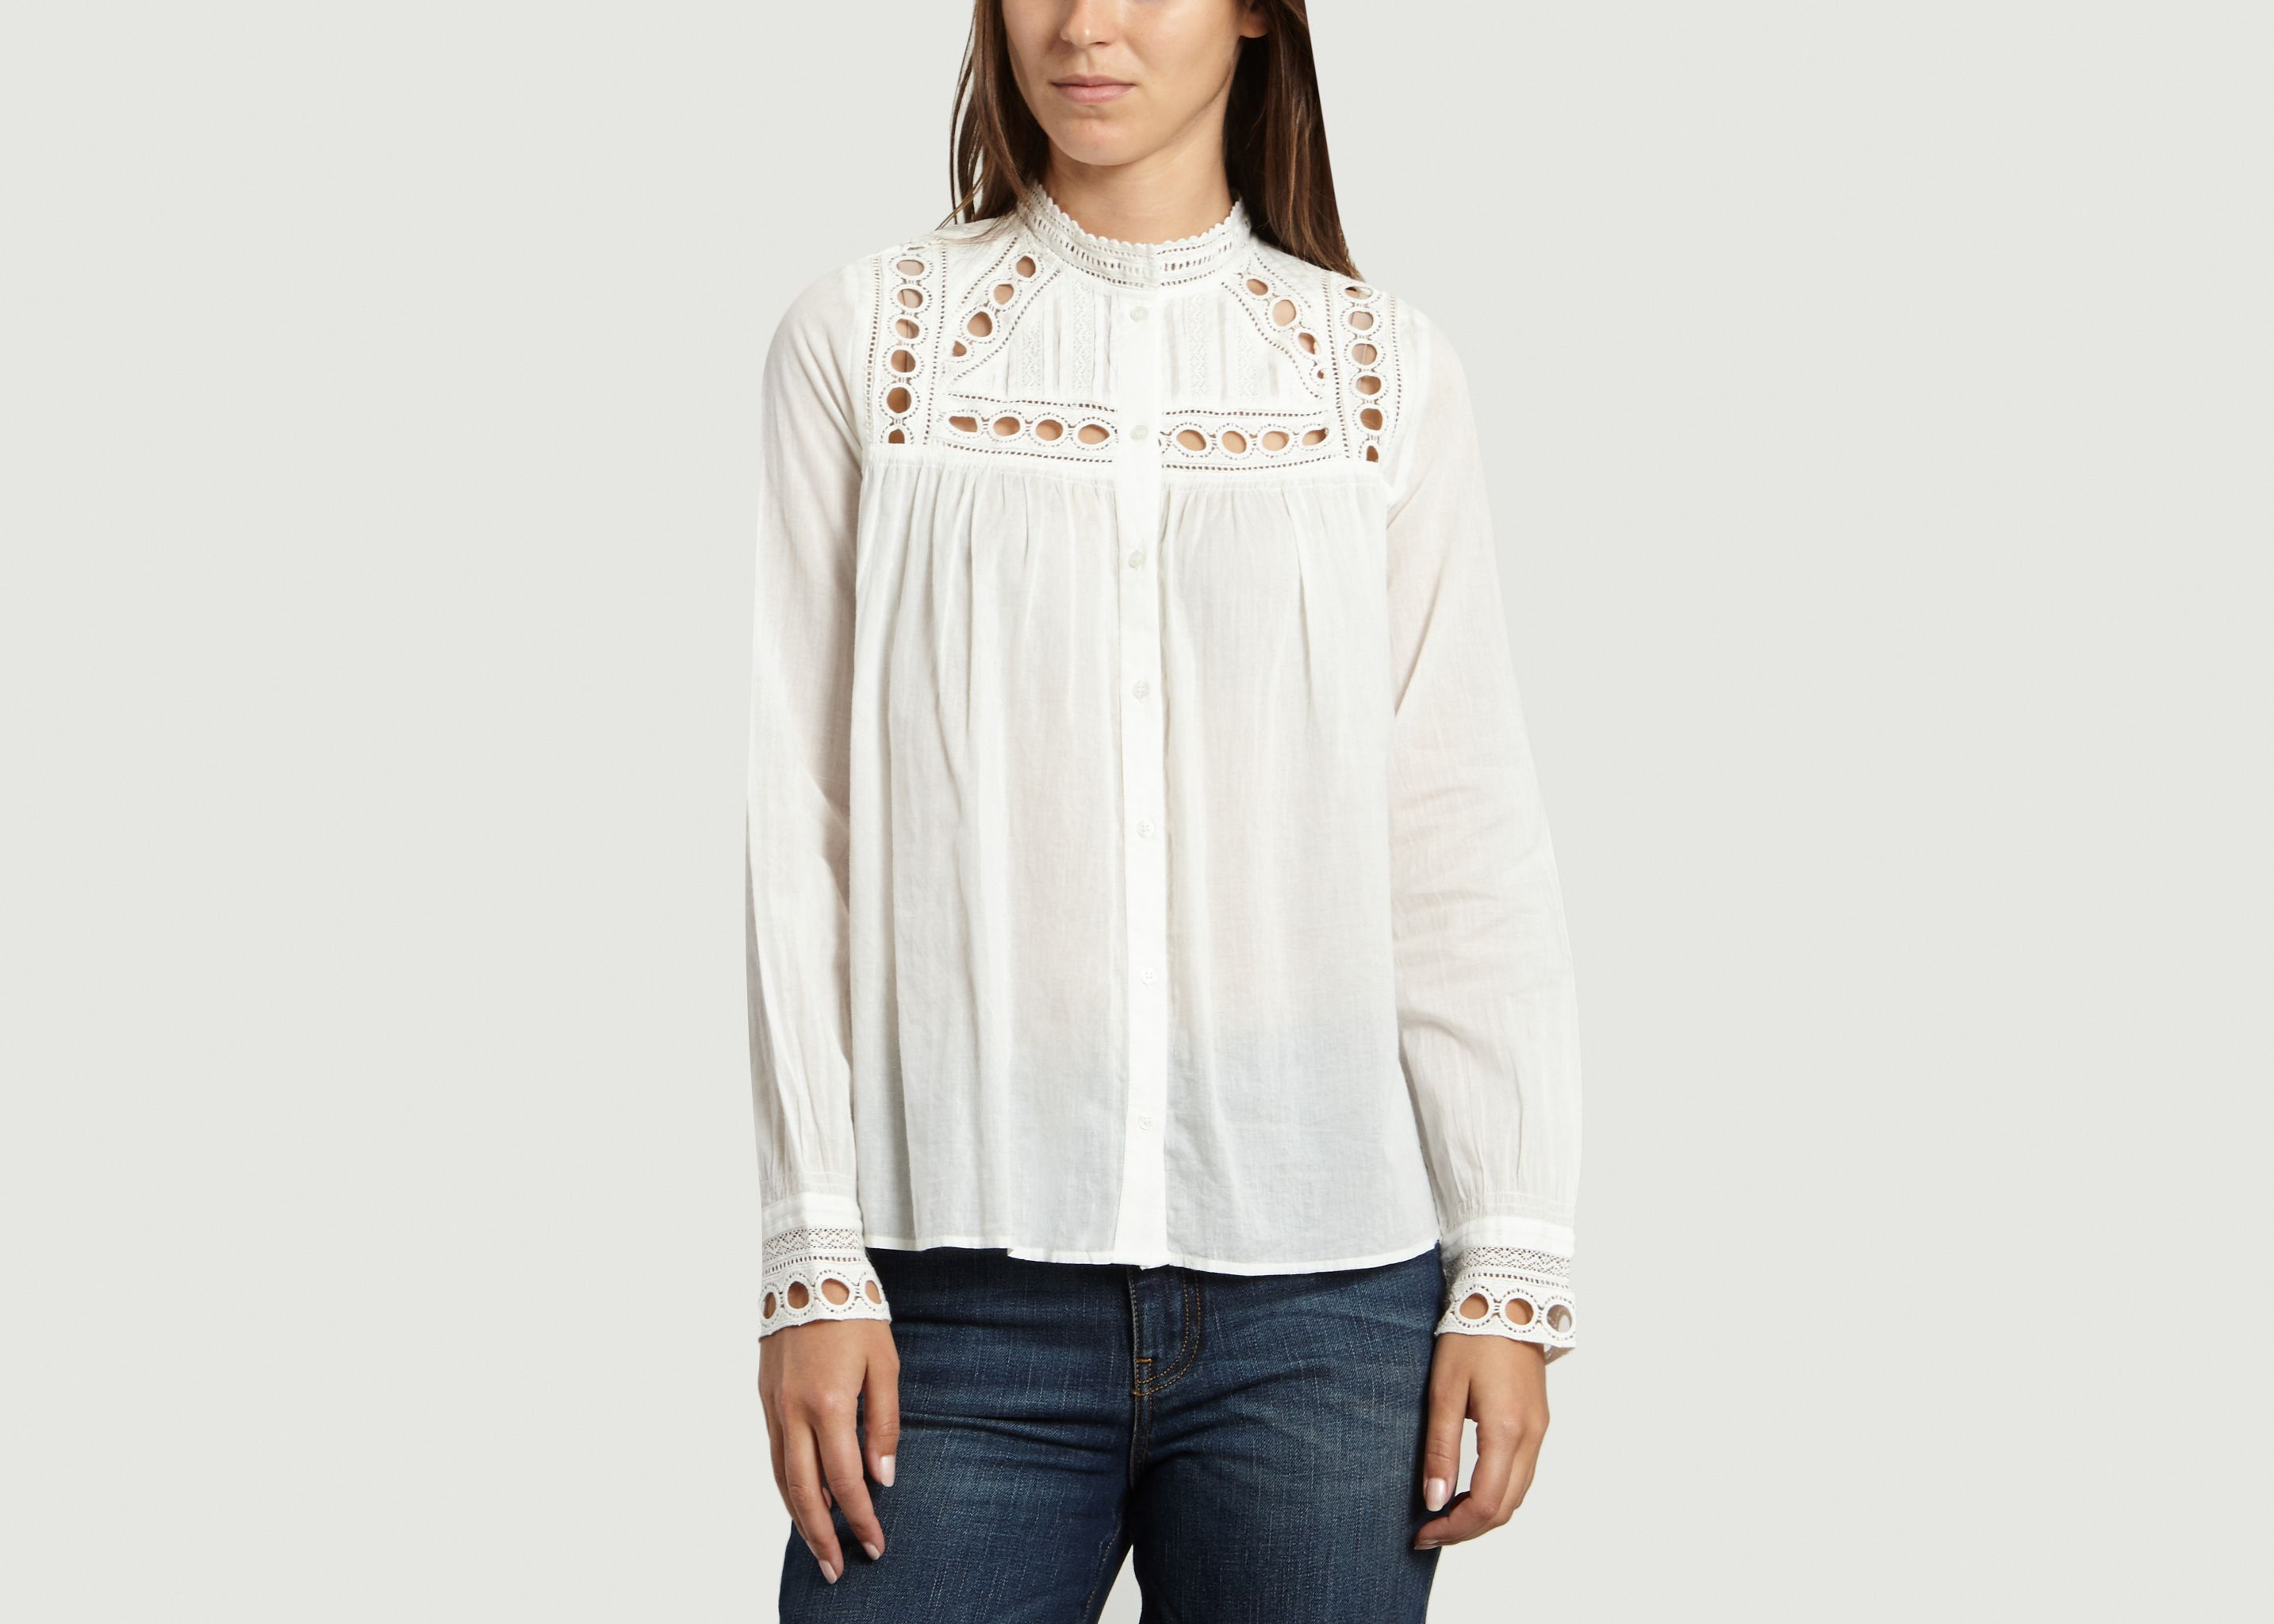 2018 Online Clearance Countdown Package SHIRTS - Blouses Vanessa Bruno Sast Cheap Price Discount Shop Offer Pre Order Online 6C0pV4AuvE